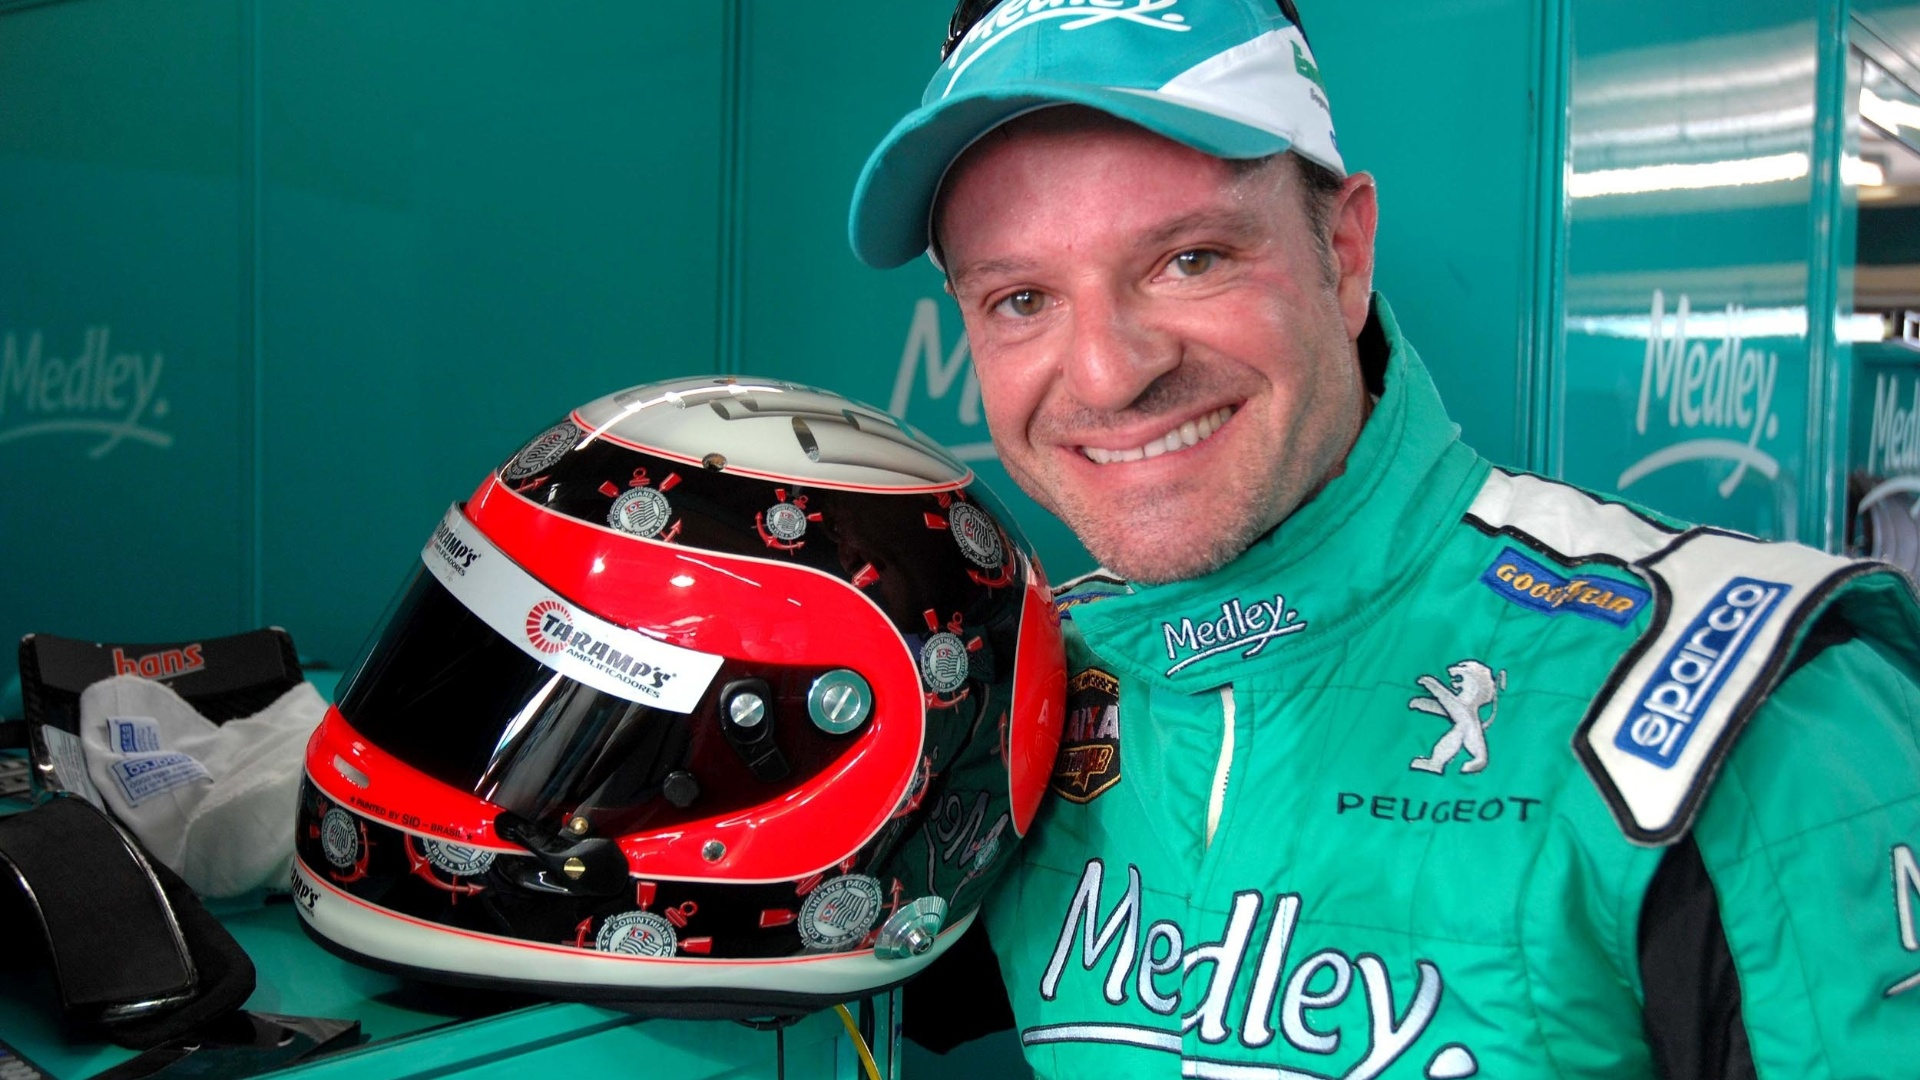 Barrichello e o capacete em homenagem ao Corinthians que usar na Stock Car